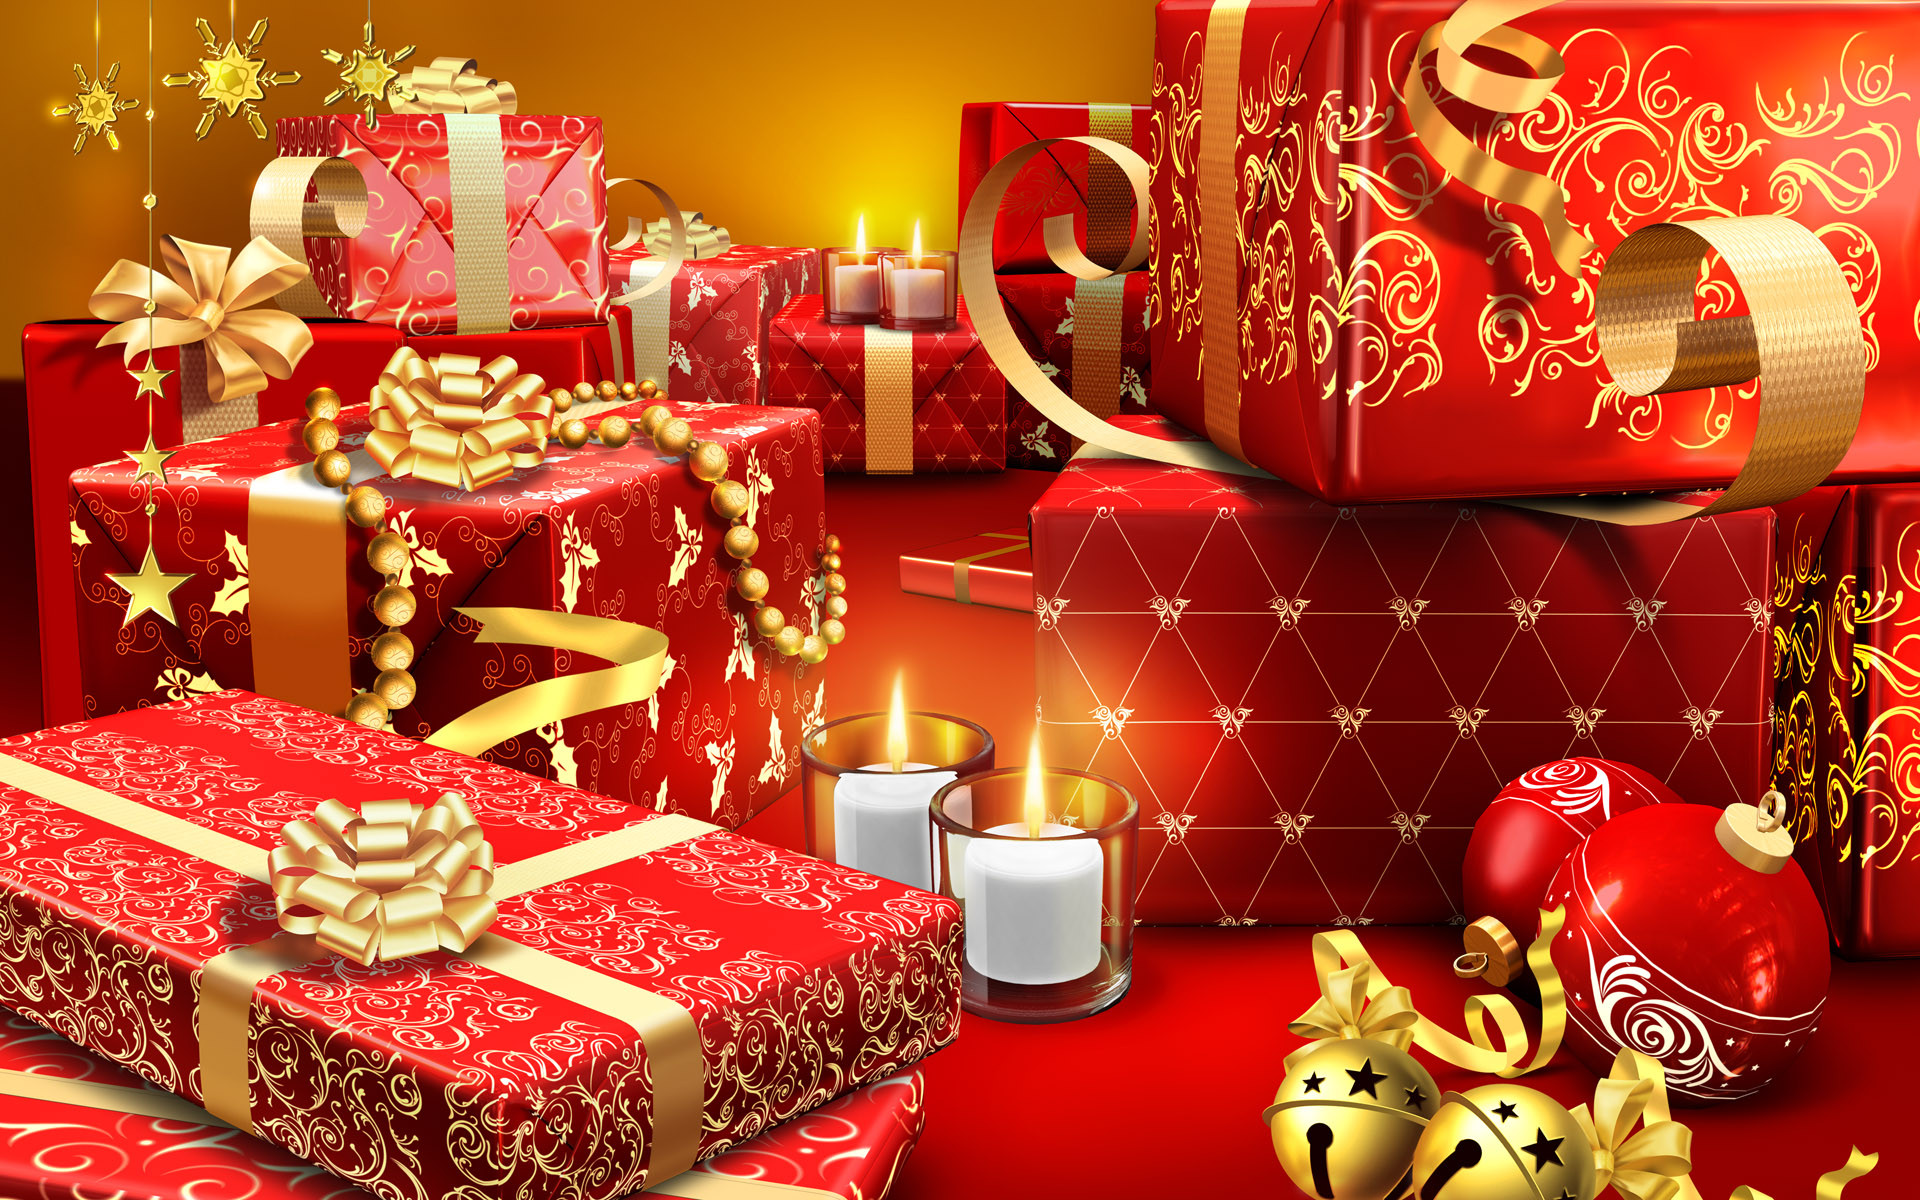 Great Holiday Gift Ideas  Get great t ideas from the Phandroid Holiday Gift Guide